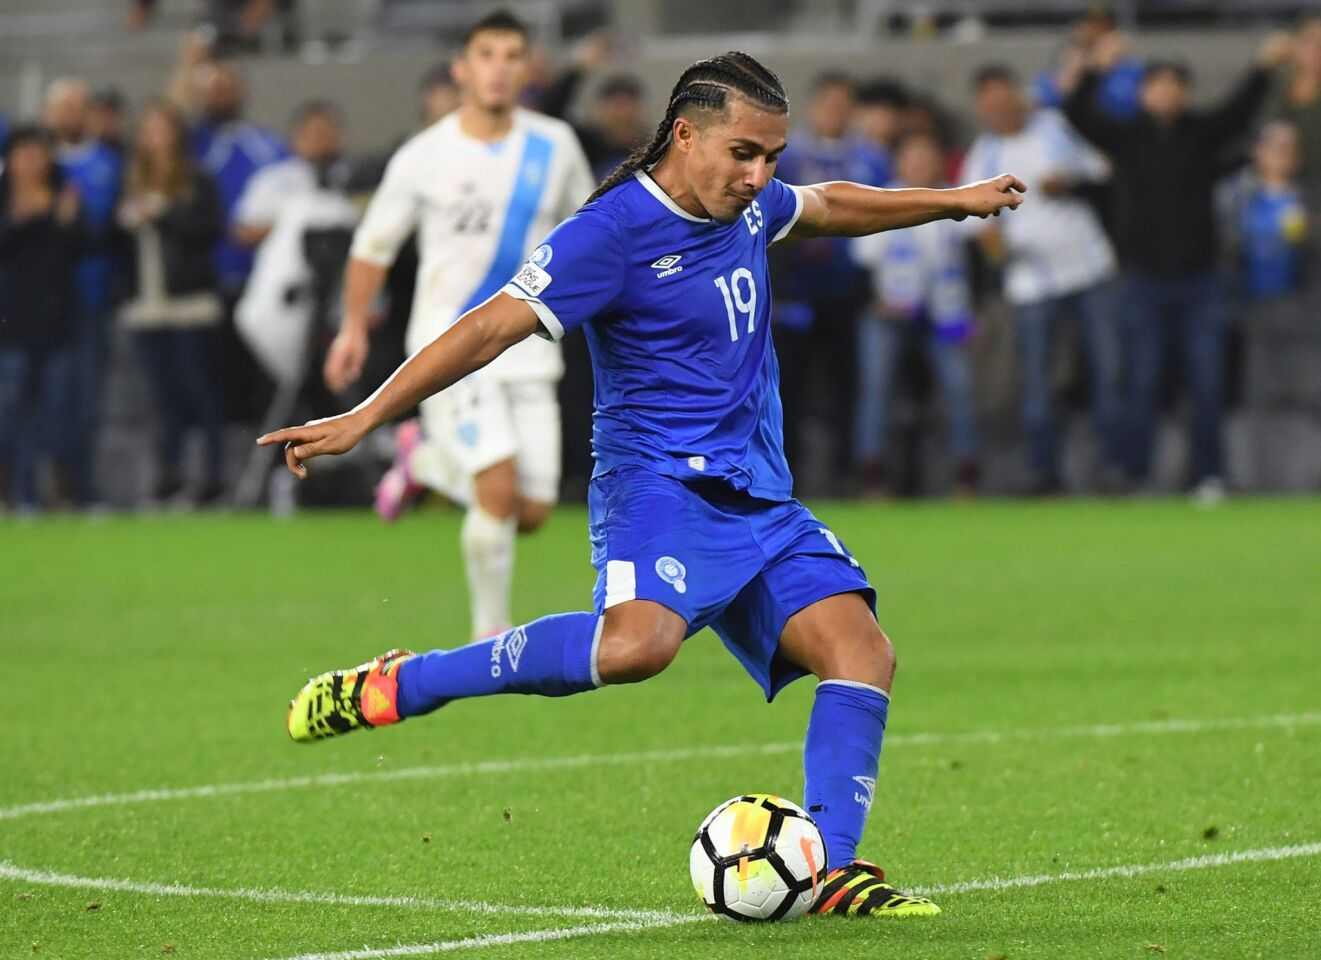 Gerson Mayen of El Salvador hits the ball during their international friendly match against Guatemala at the Banc of California Stadium in Los Angeles, California on March 6, 2019. (Photo by Mark RALSTON / AFP)MARK RALSTON/AFP/Getty Images ** OUTS - ELSENT, FPG, CM - OUTS * NM, PH, VA if sourced by CT, LA or MoD **